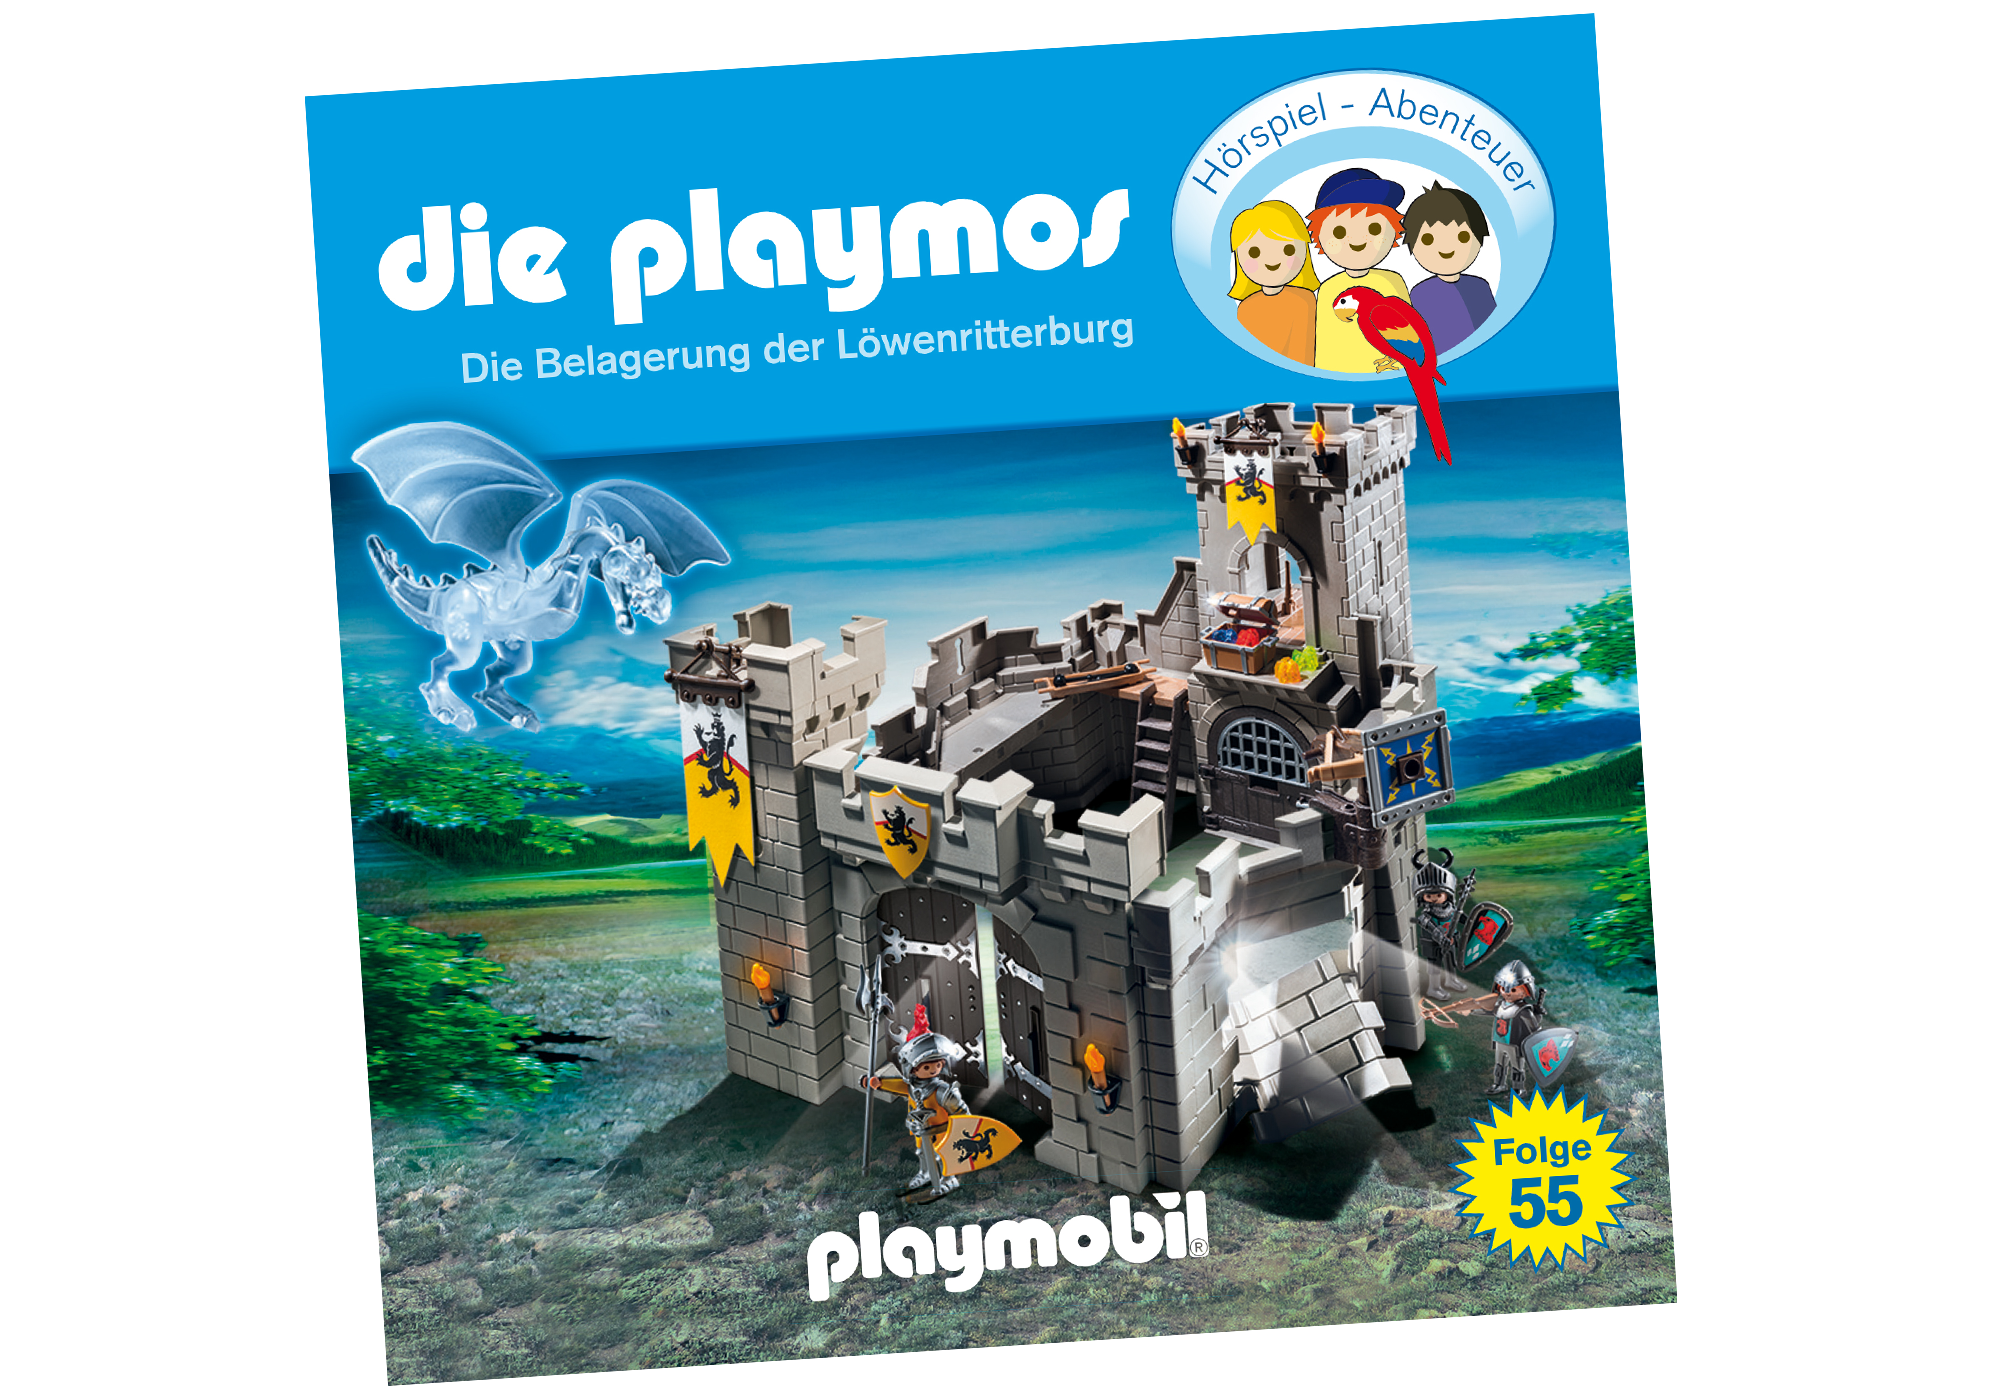 http://media.playmobil.com/i/playmobil/80484_product_detail